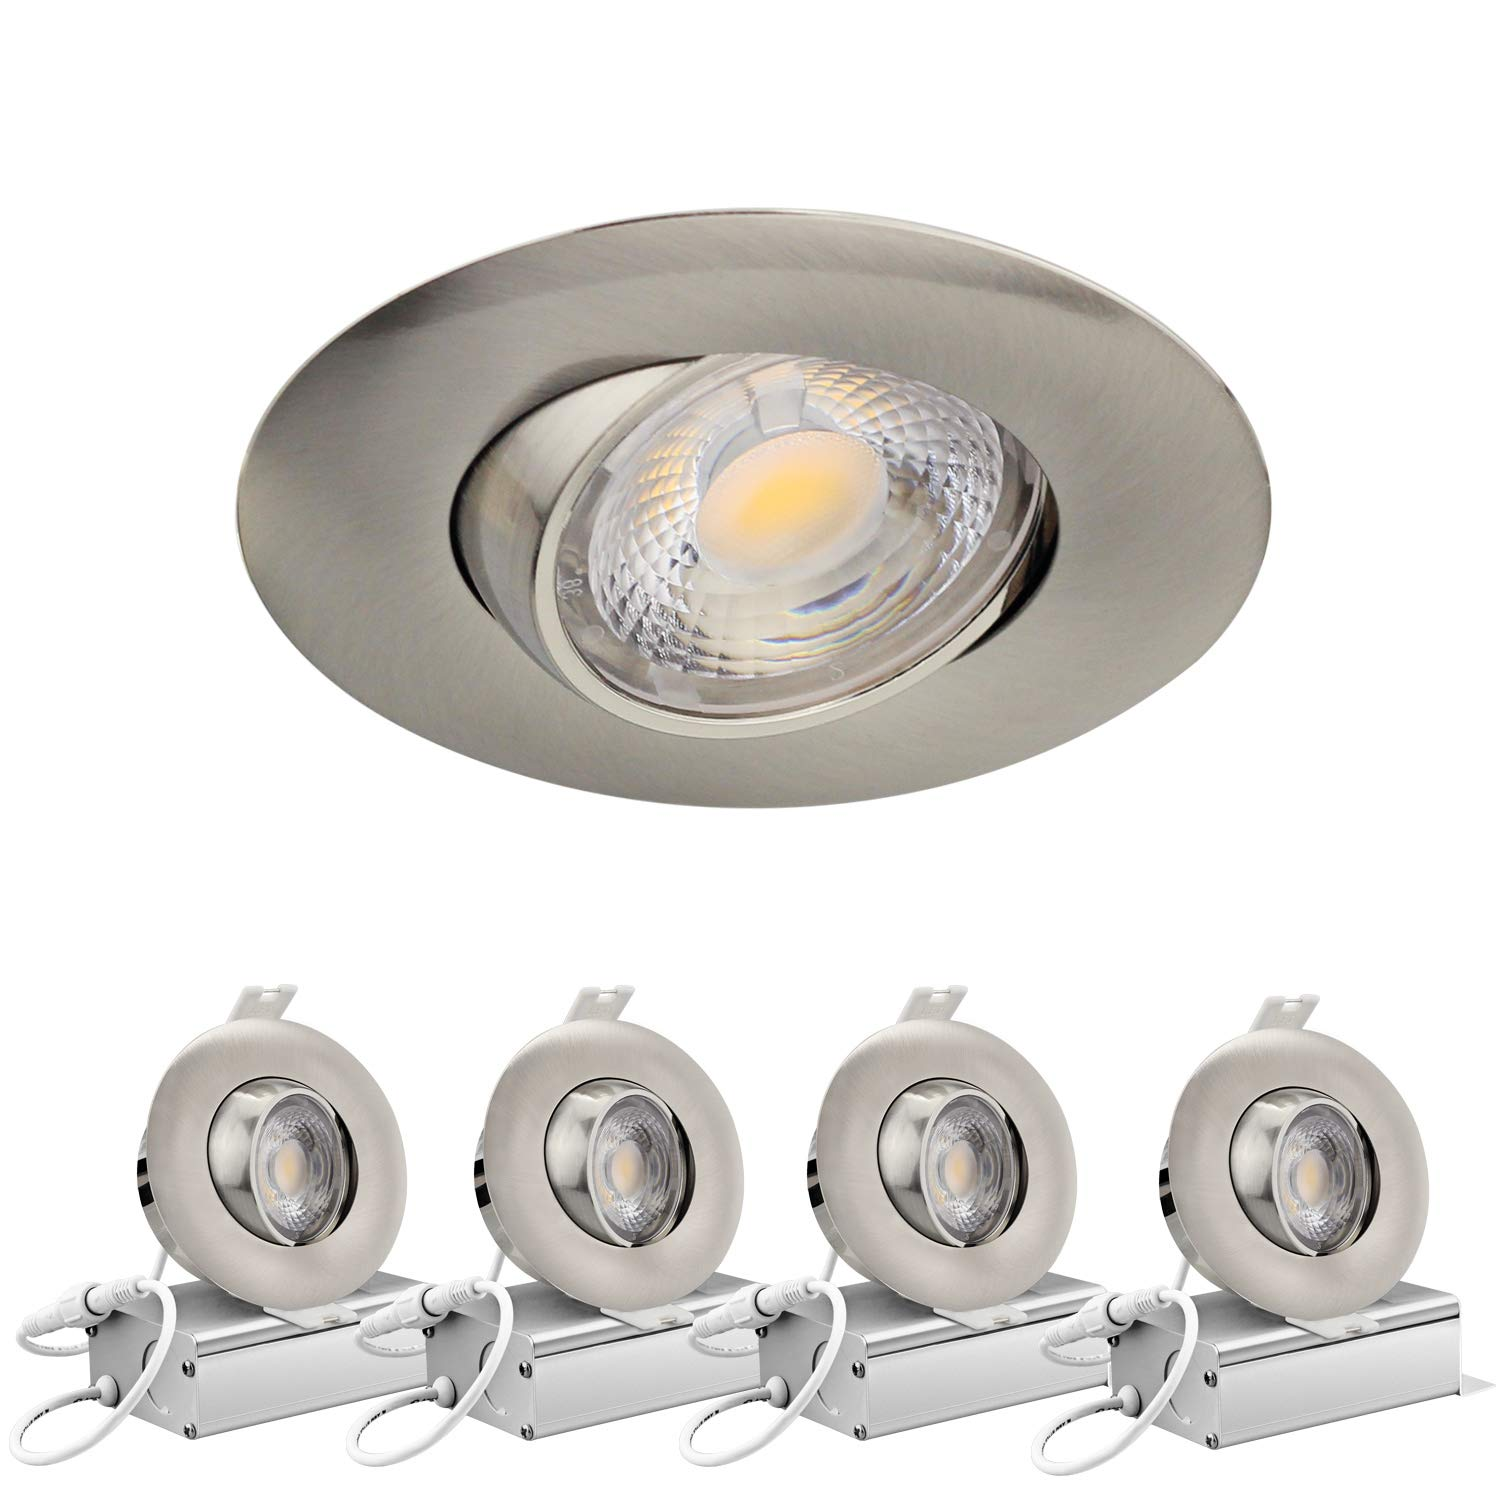 Led recessed light 3 inch 8w 700 lumens ic rated gimbal adjustable recessed led downlight energy star etl approved 4pack 3000k warm white brushed nickel